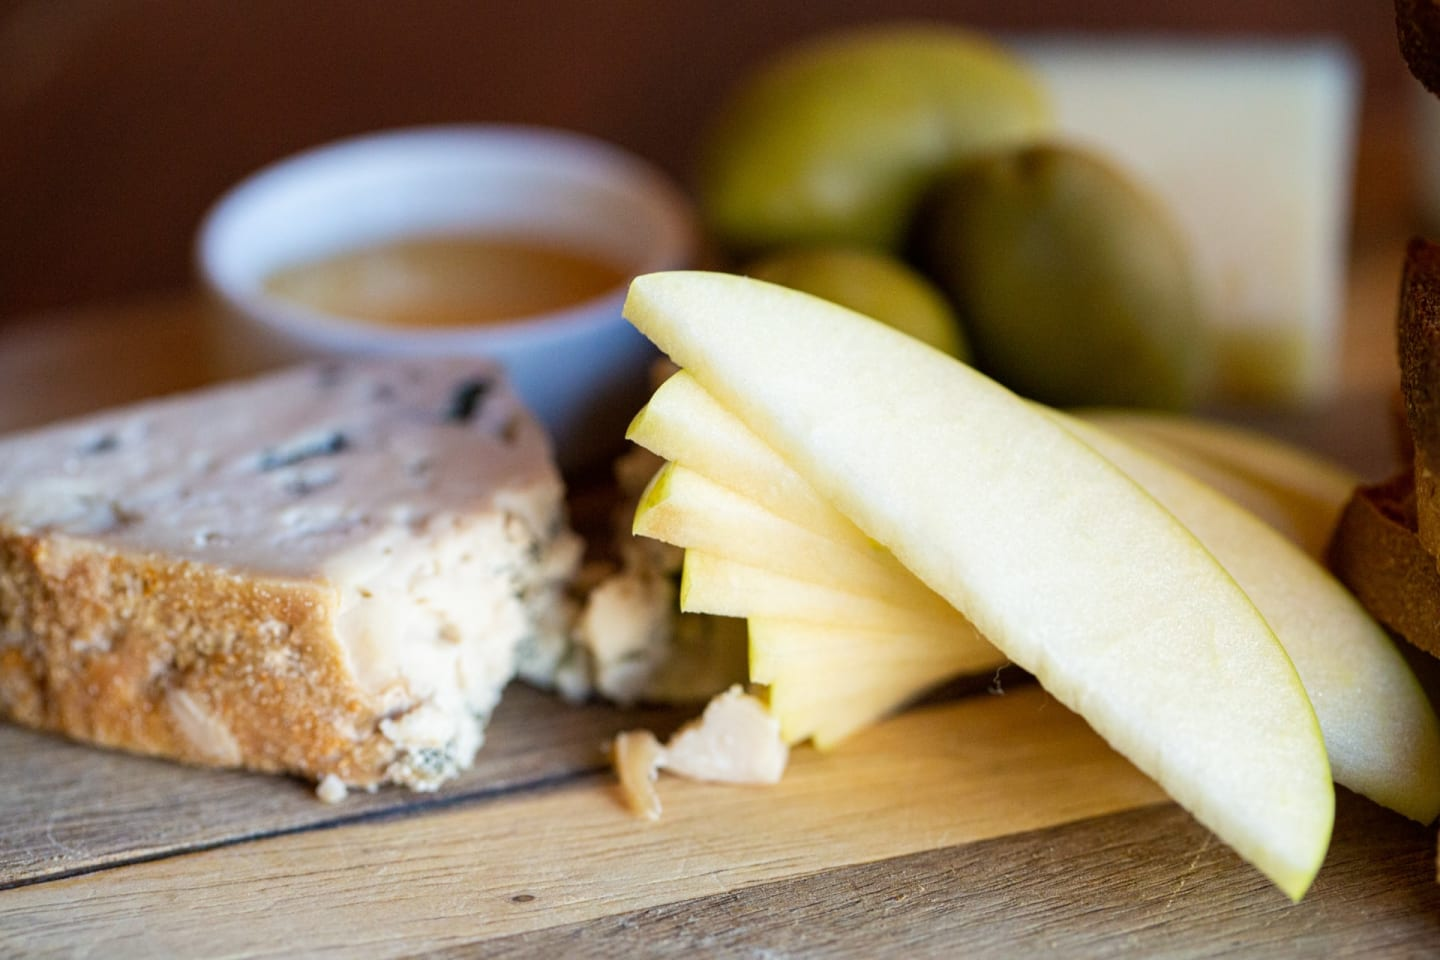 apples from cheese board